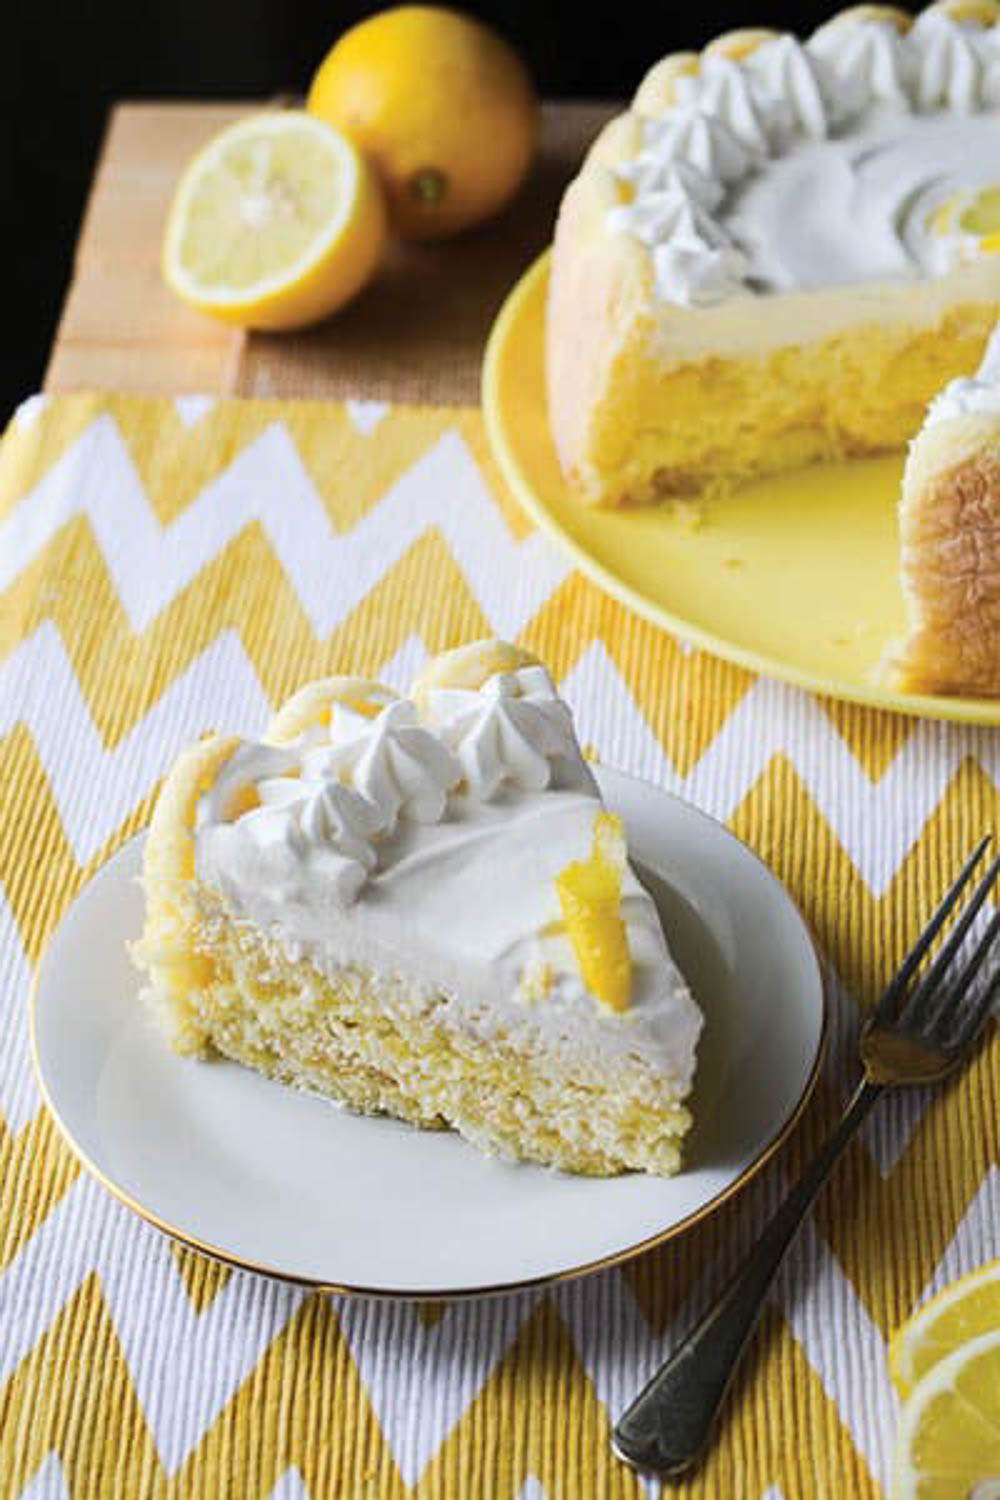 A cake on a yellow plate with a slice cut out of it and one slice on a white plate with a metal fork by it.